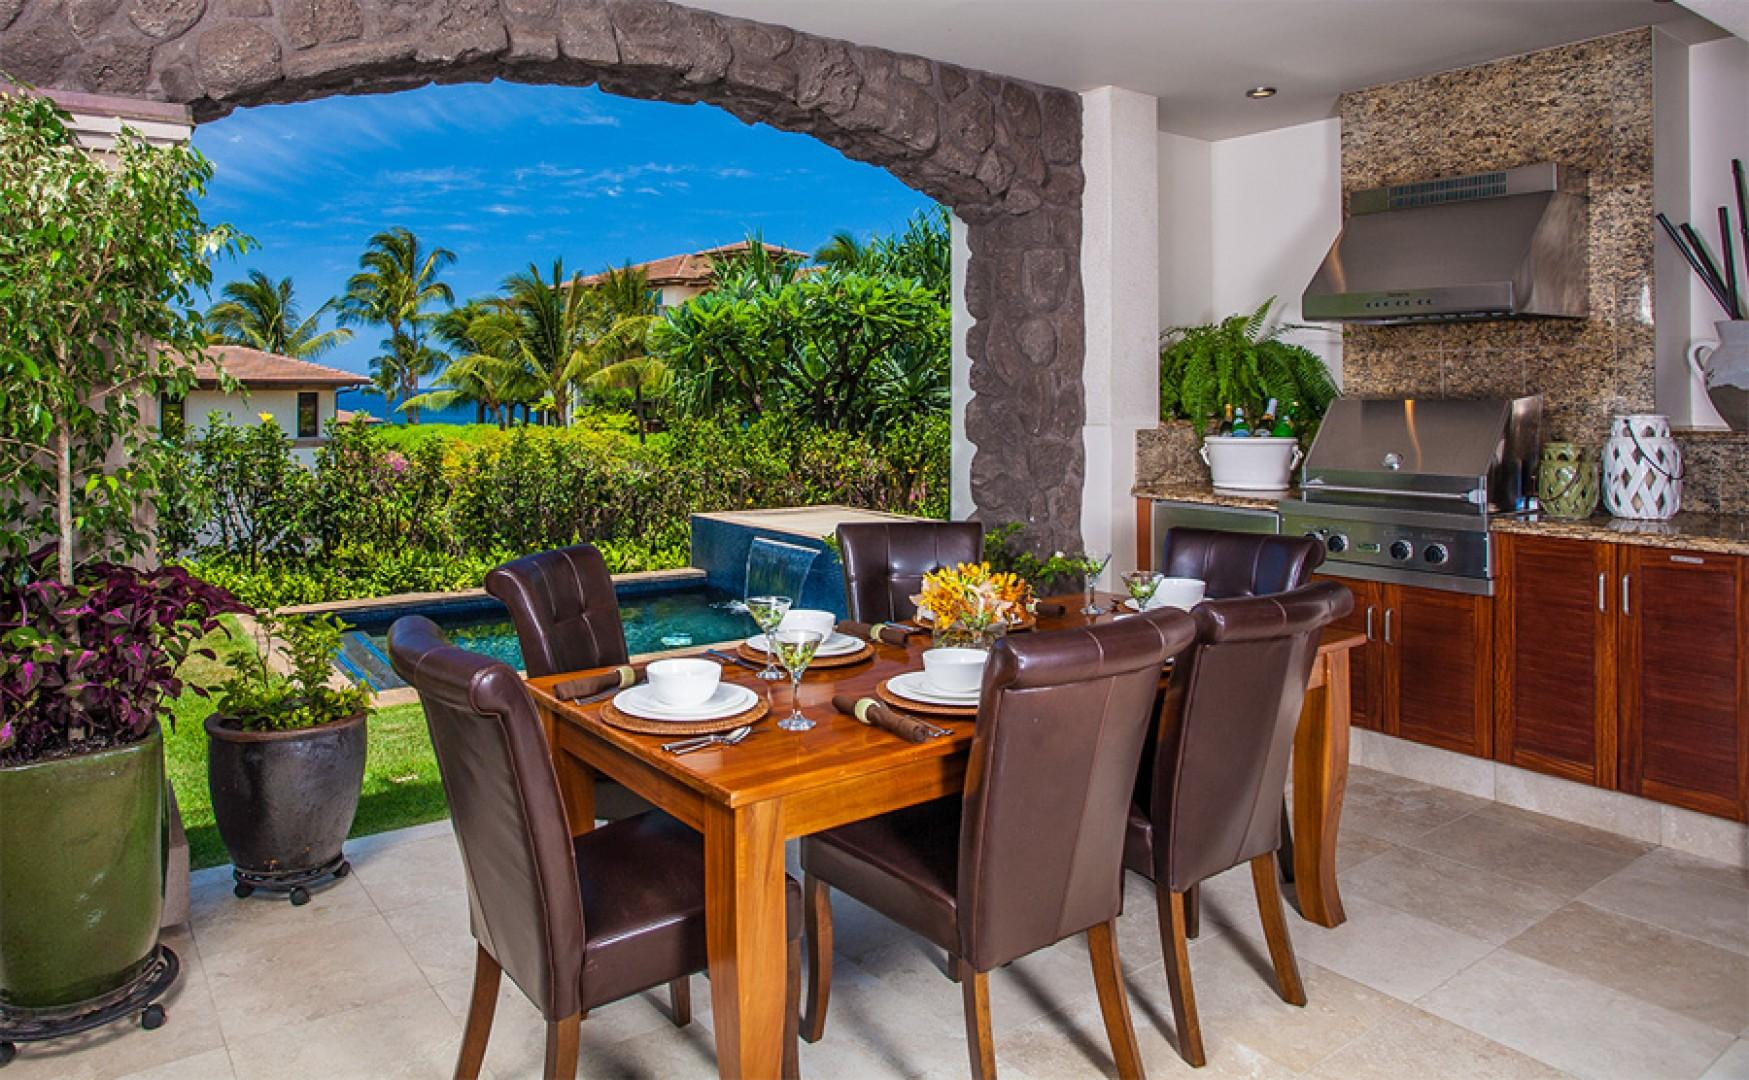 Covered lanai with lounge chairs, dining area, Viking gas barbecue grill, and refrigerator.